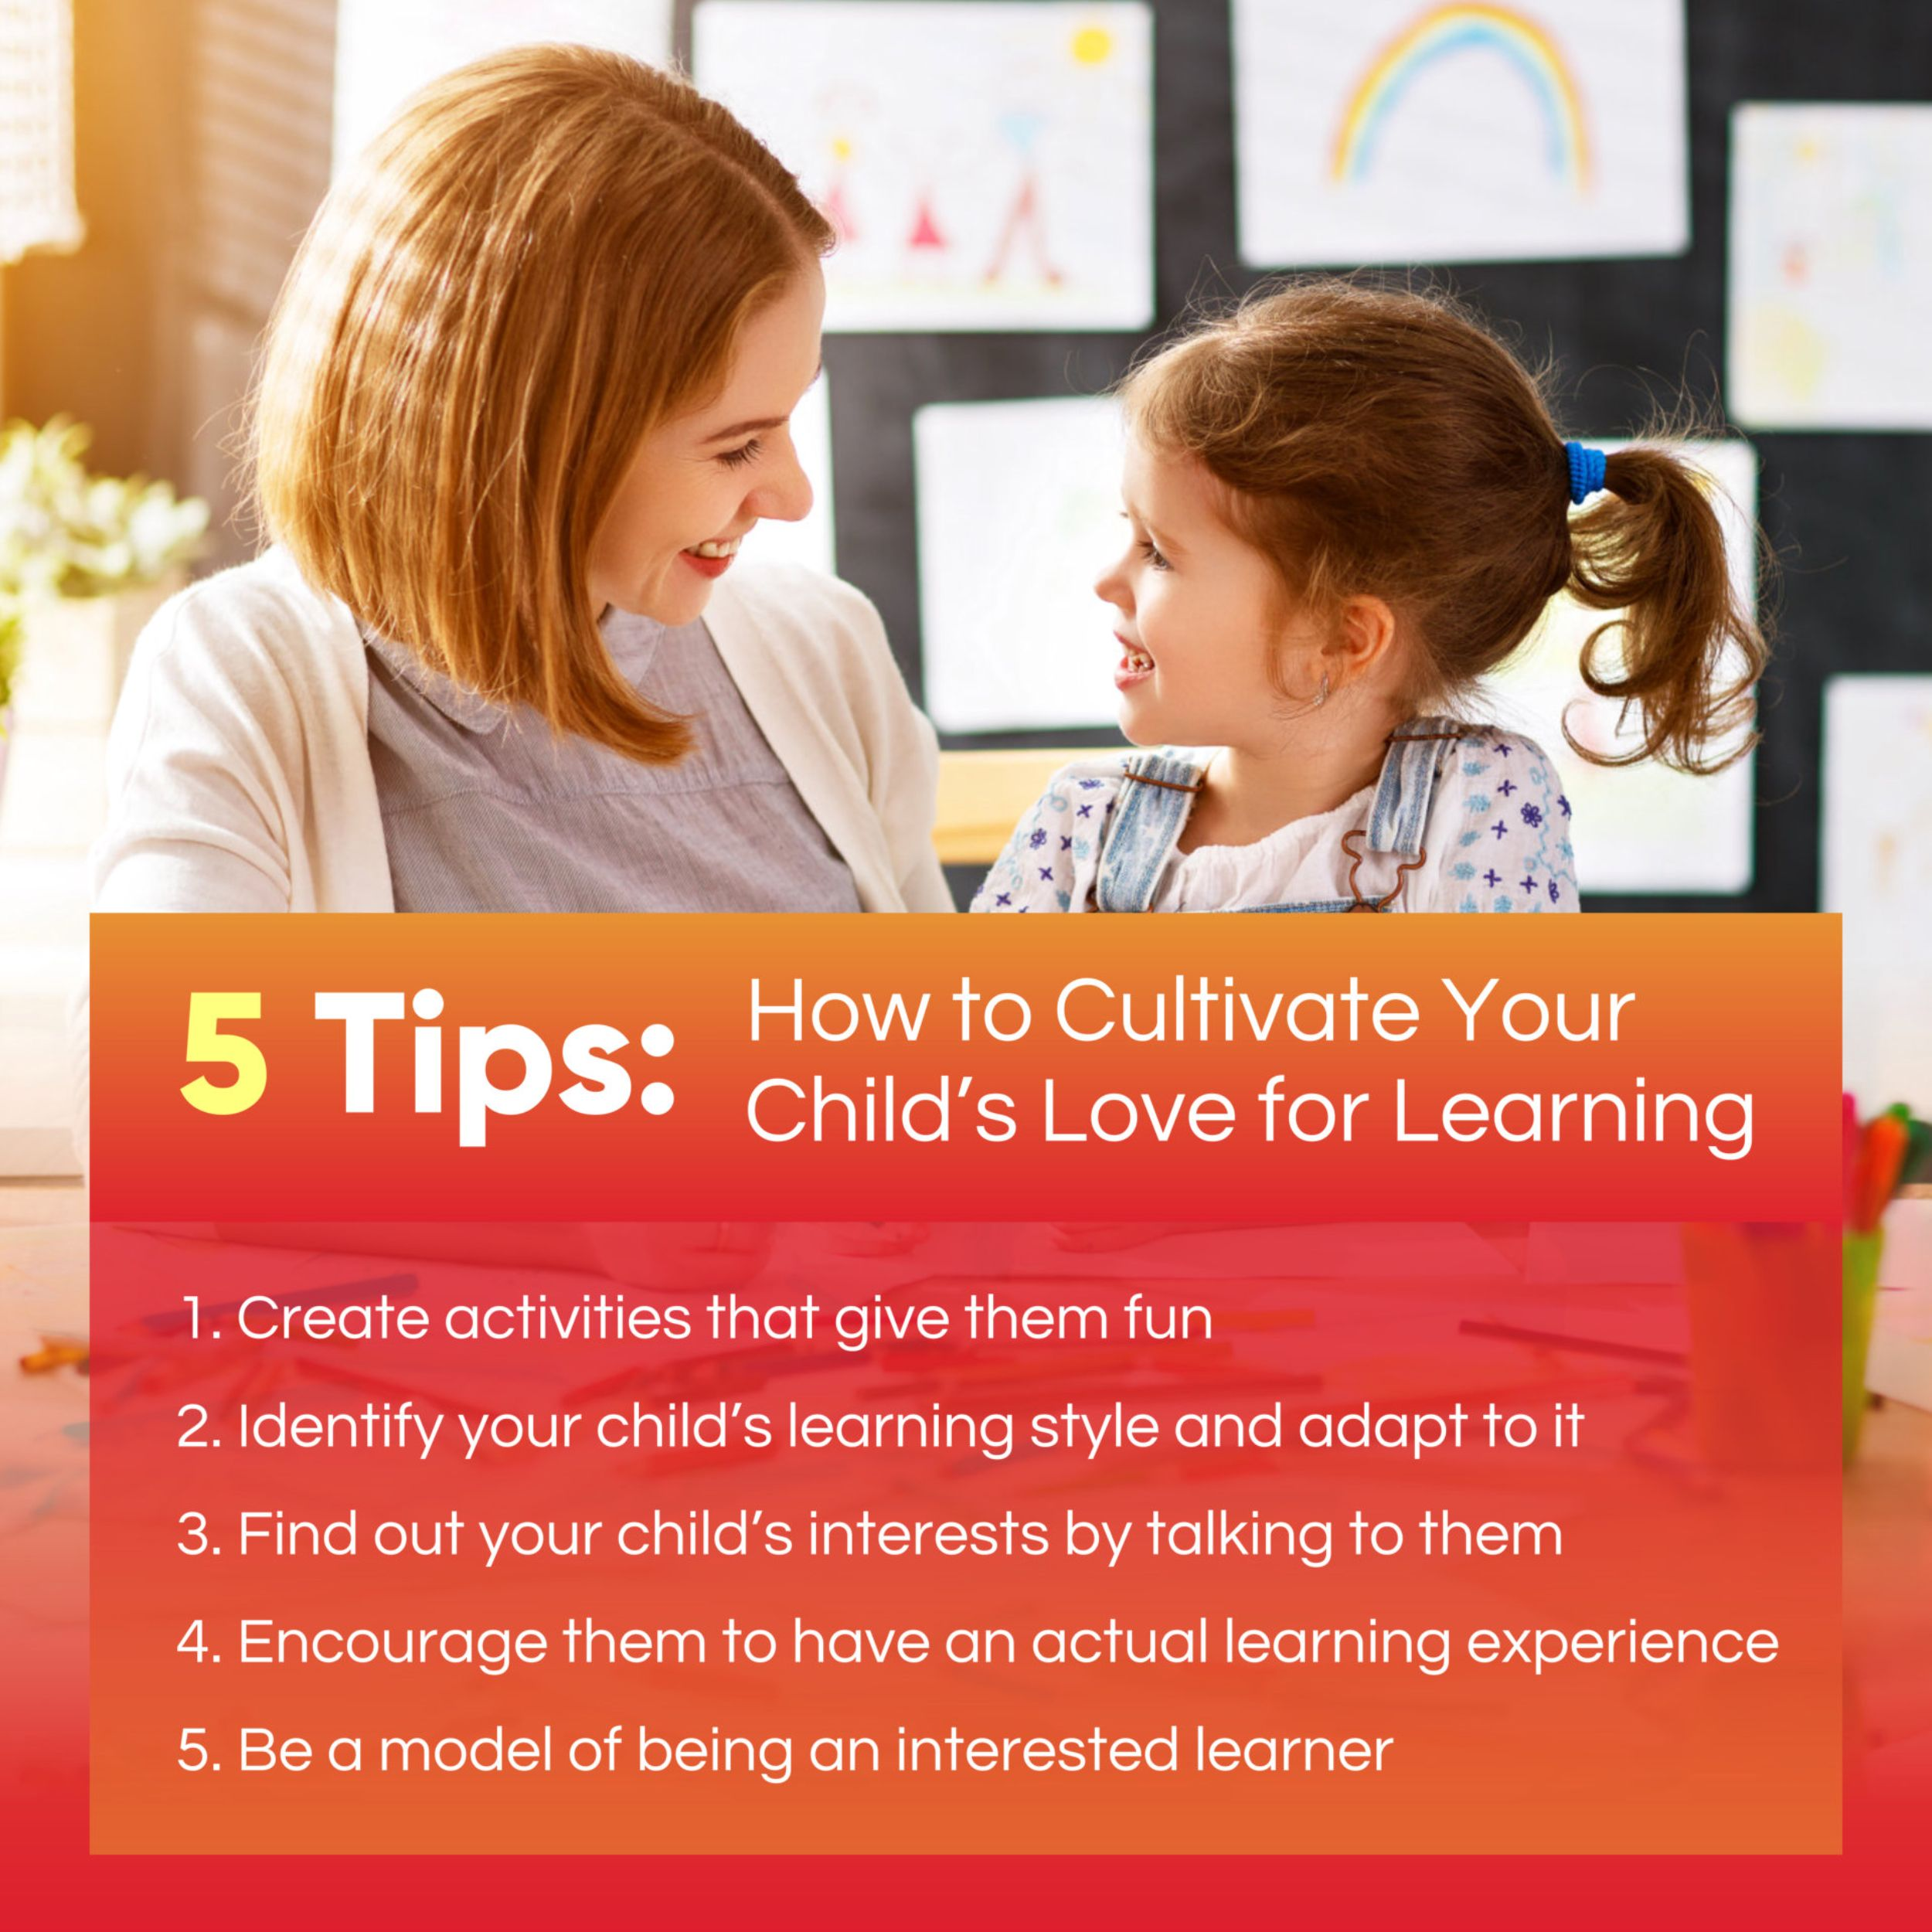 5 Tips How to Cultivate Your Child's Love for Learning